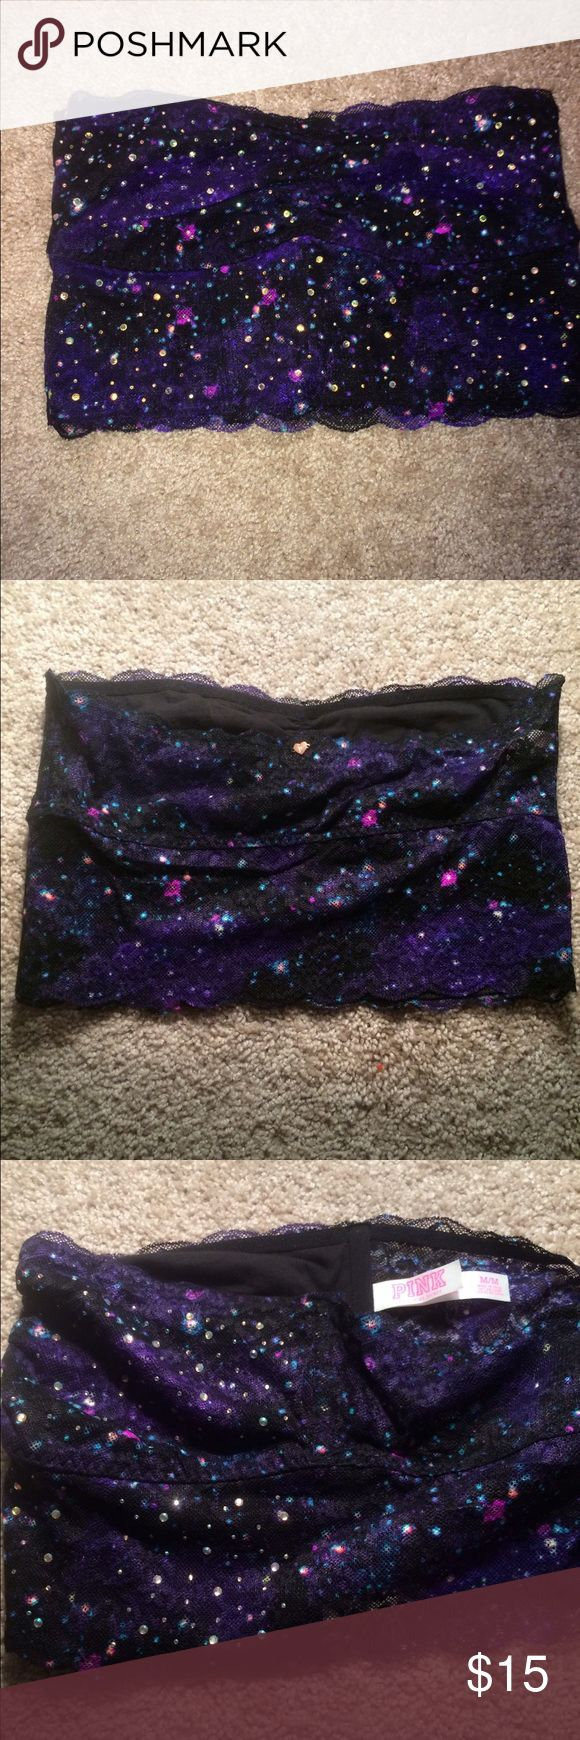 """Victoria's Secret Bralette Victoria's Secret PINK long line lace bandeau in the color """"Bling Galaxy"""" size medium. only worn one time, like new condition! Victoria's Secret Intimates & Sleepwear Bandeaus"""